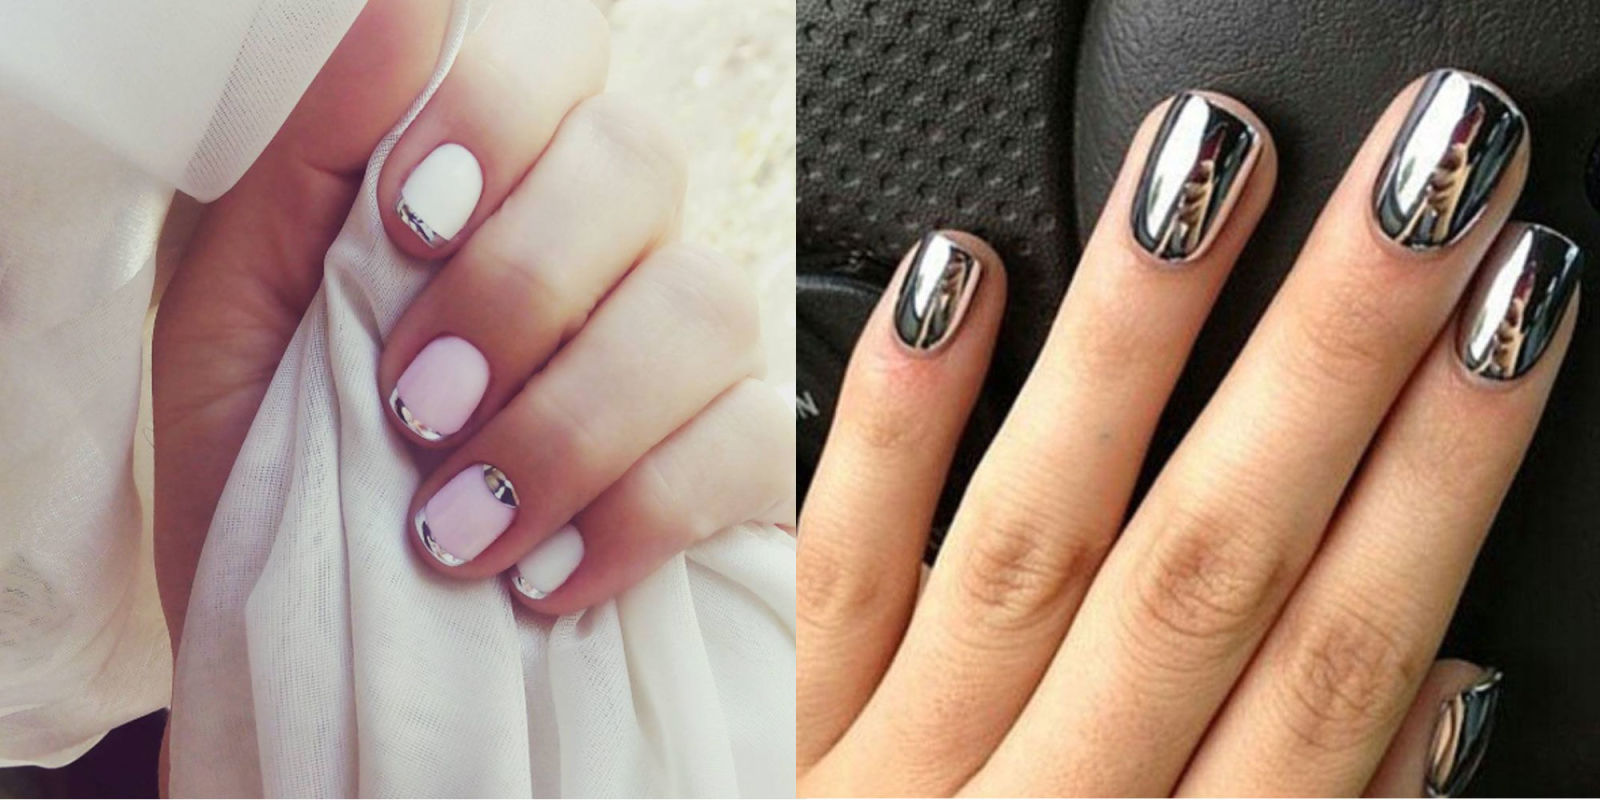 Mirror Nail Designs will have you staring at your Manicure All Day